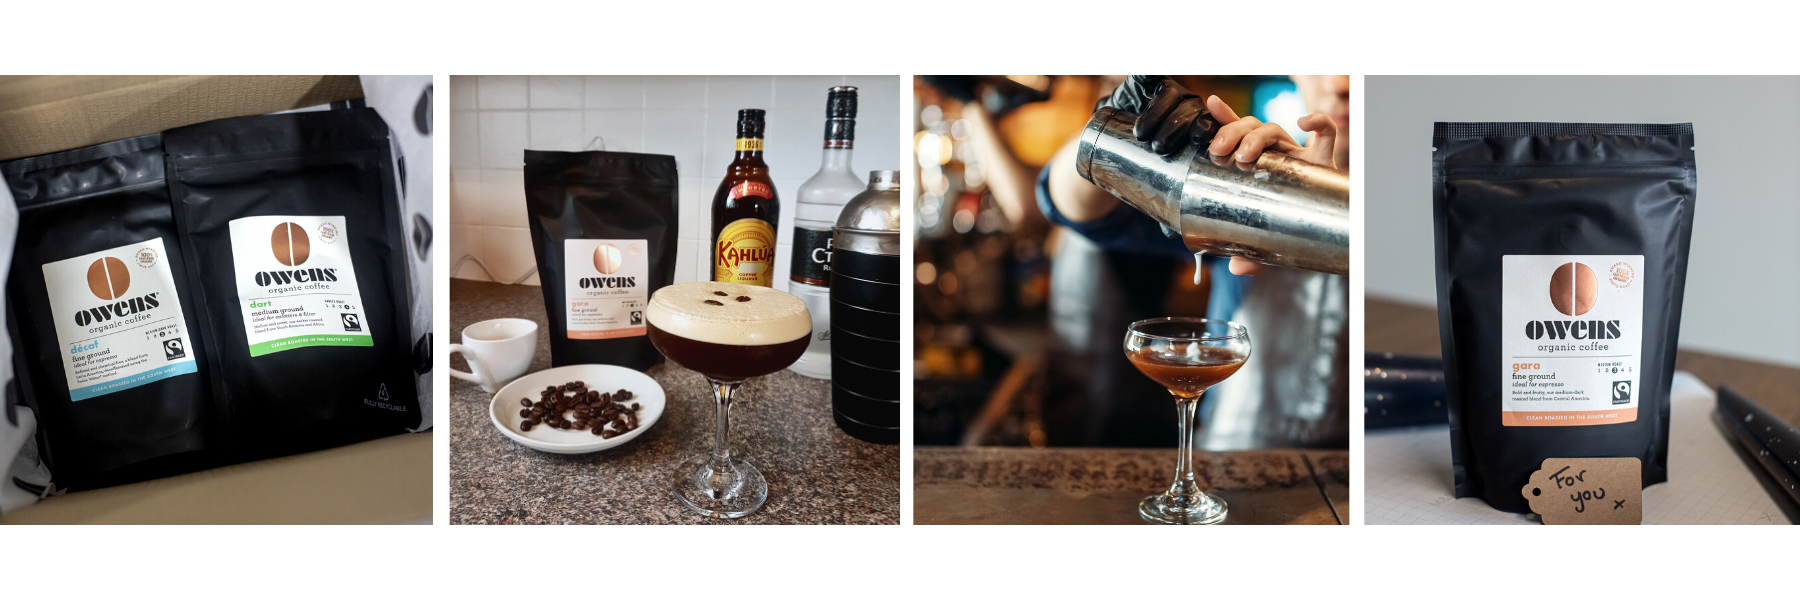 Espresso Vodka Drinks: How to Make an Espresso Martini at Home